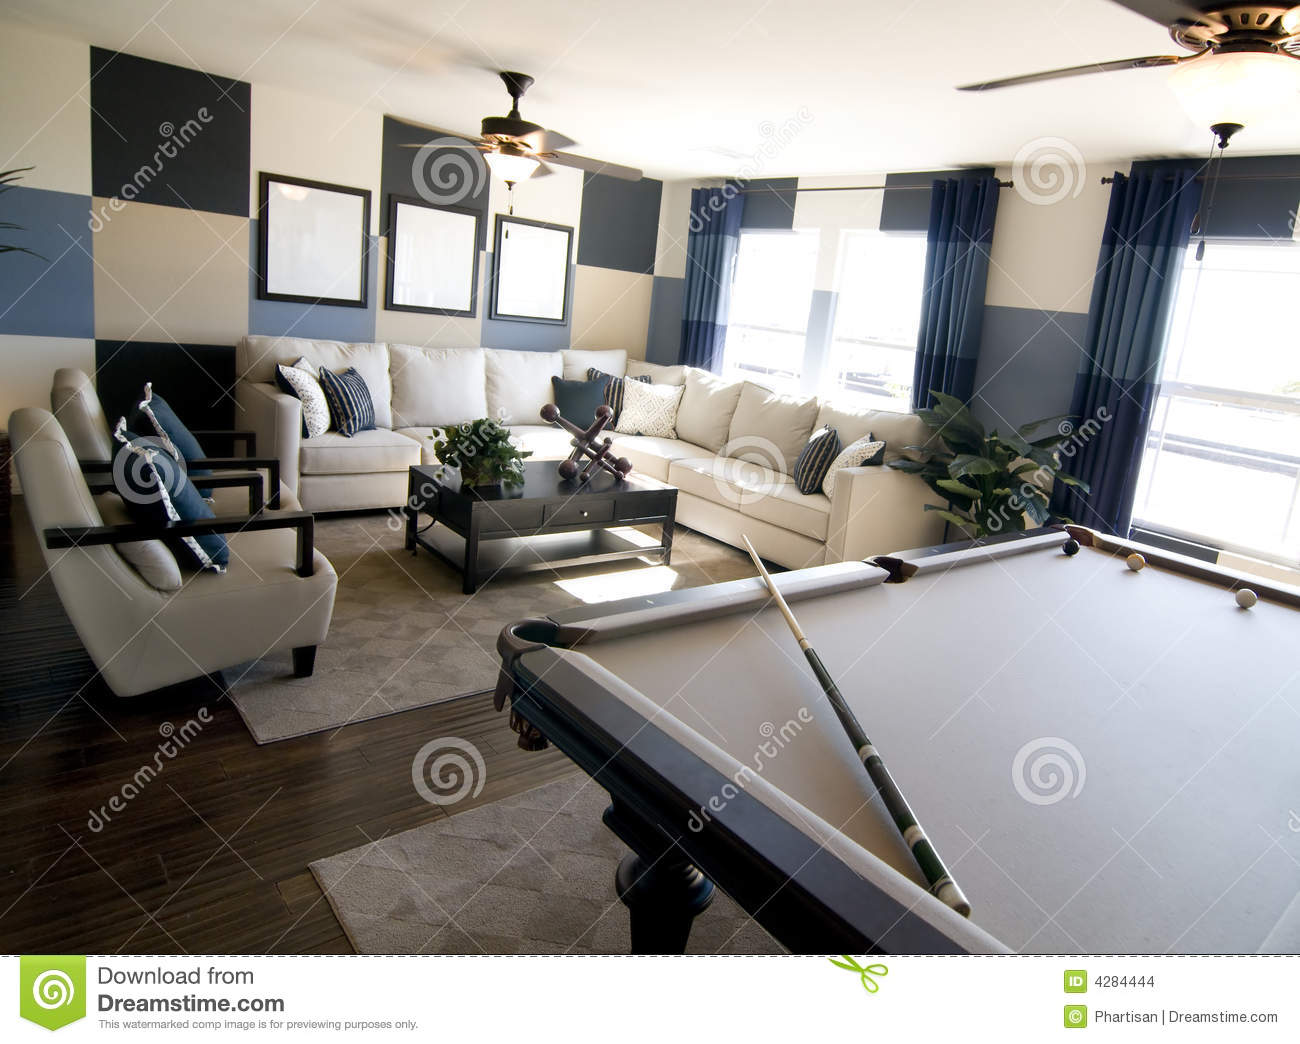 Luxury game room interior design stock photo image of decorate space 4284444 - Doing home interior design online ...